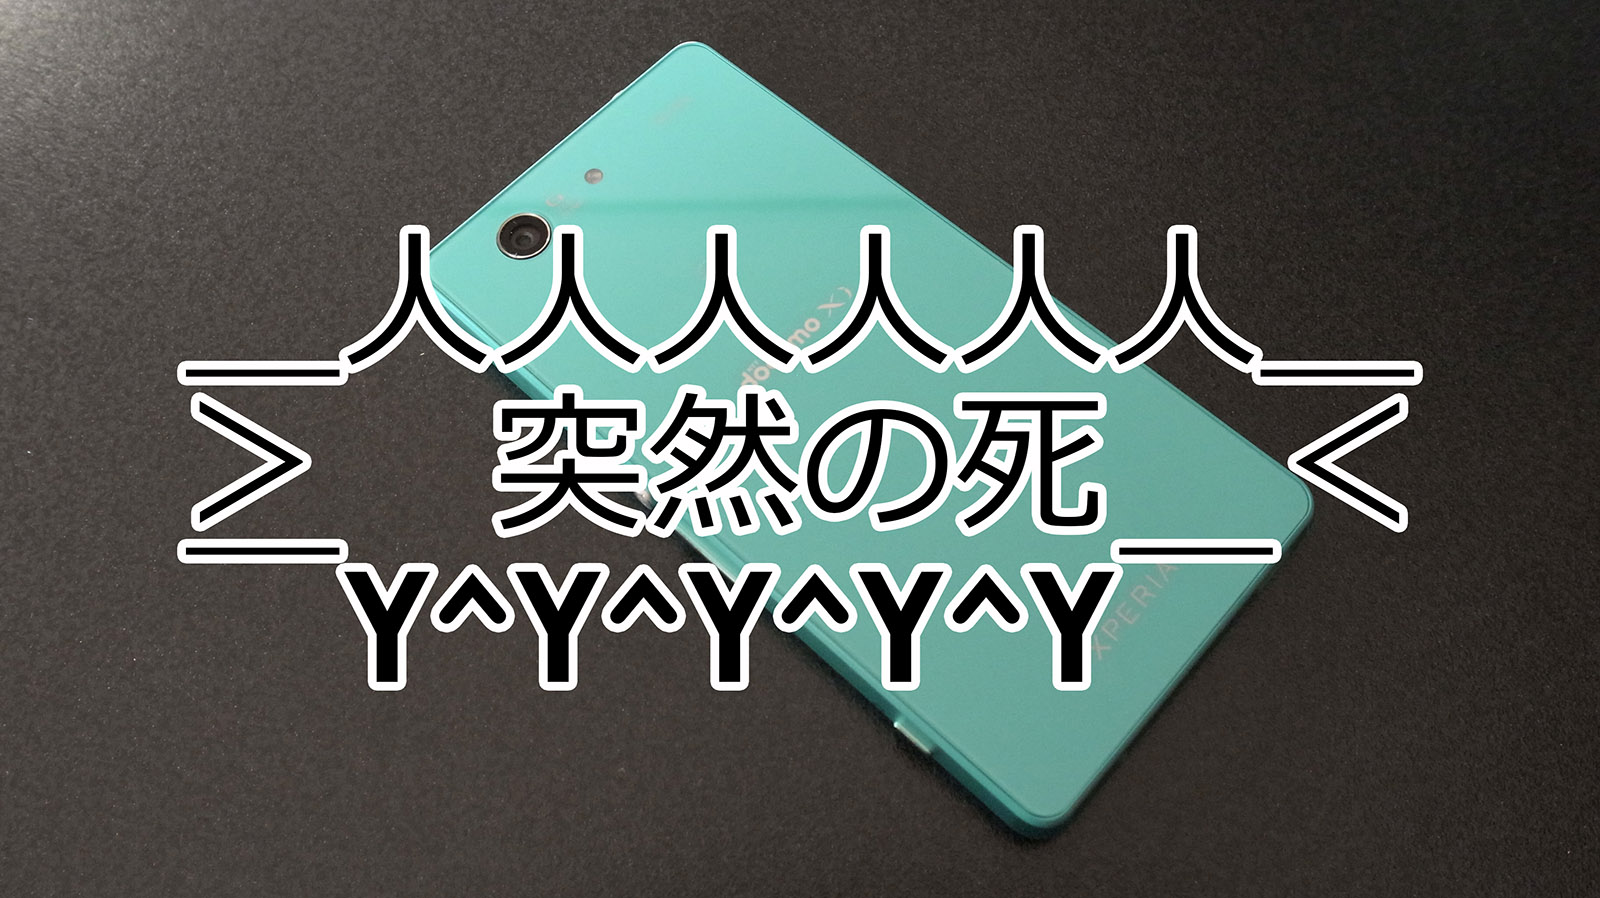 xperia z3 compact 突然の死